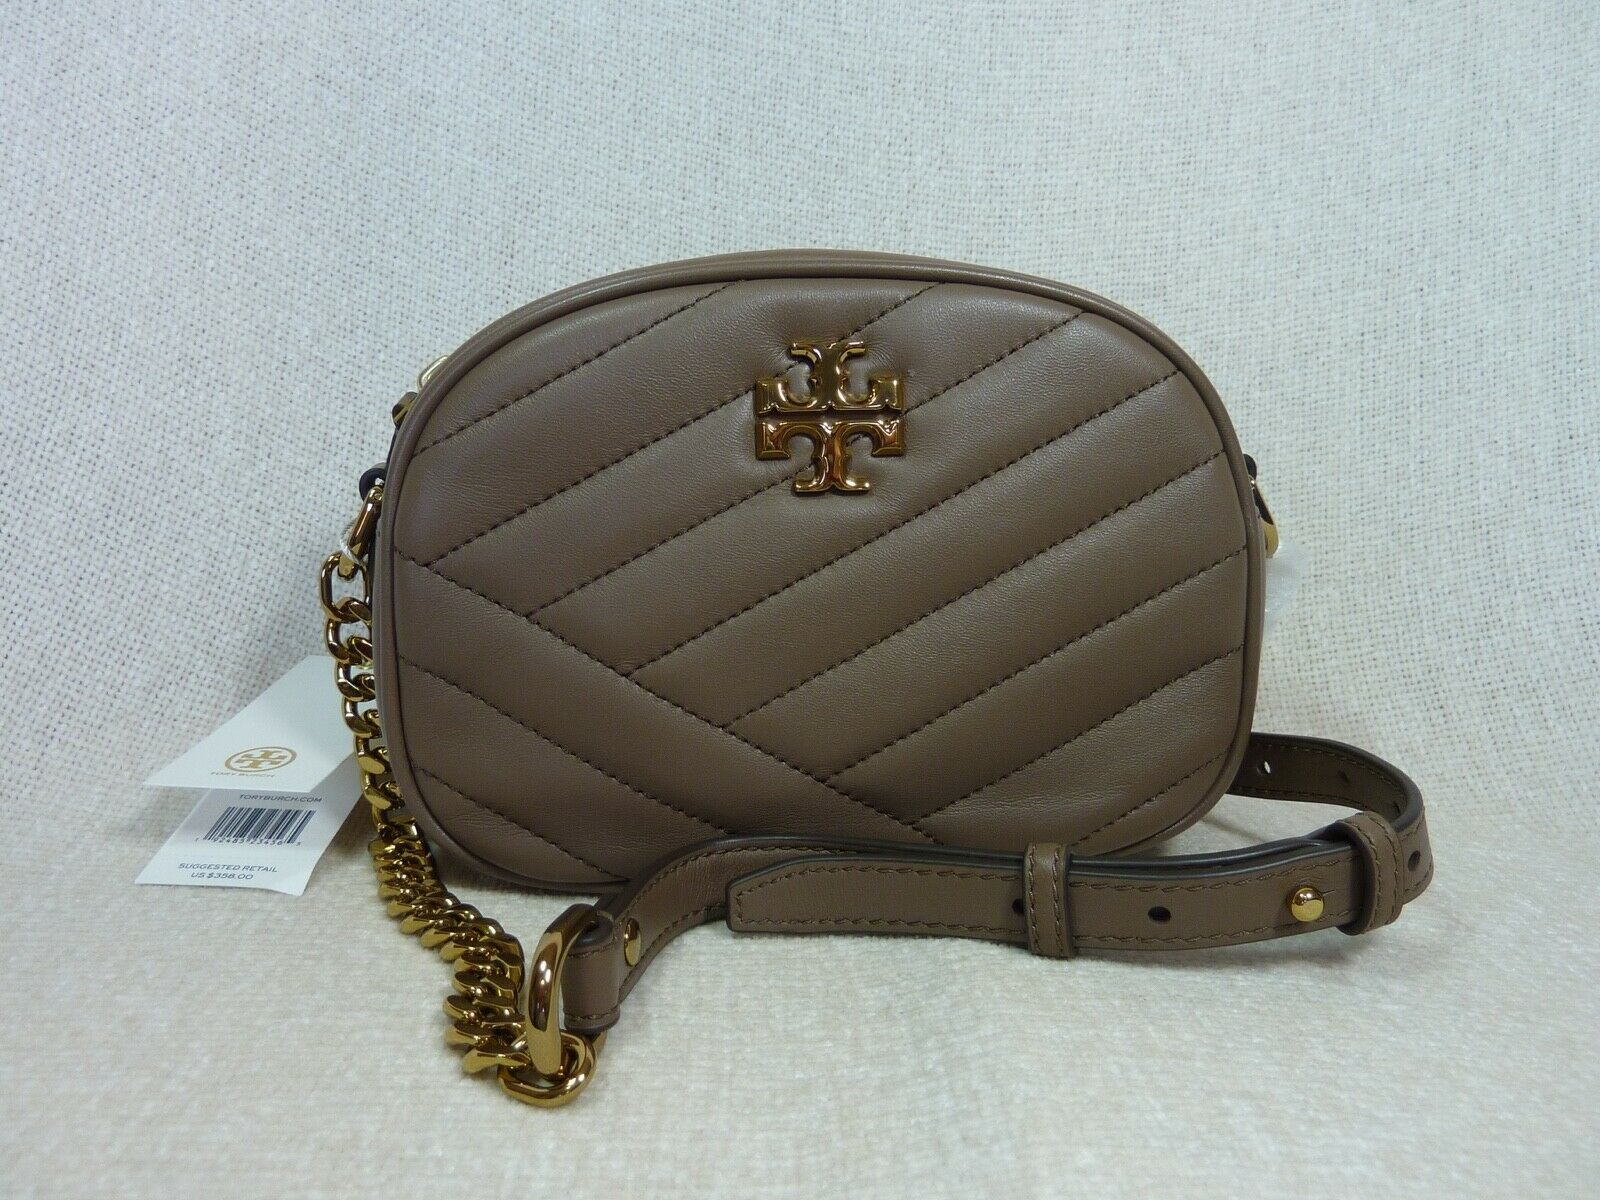 Primary image for NWT Tory Burch Classic Taupe Kira Chevron Small Camera Bag $358